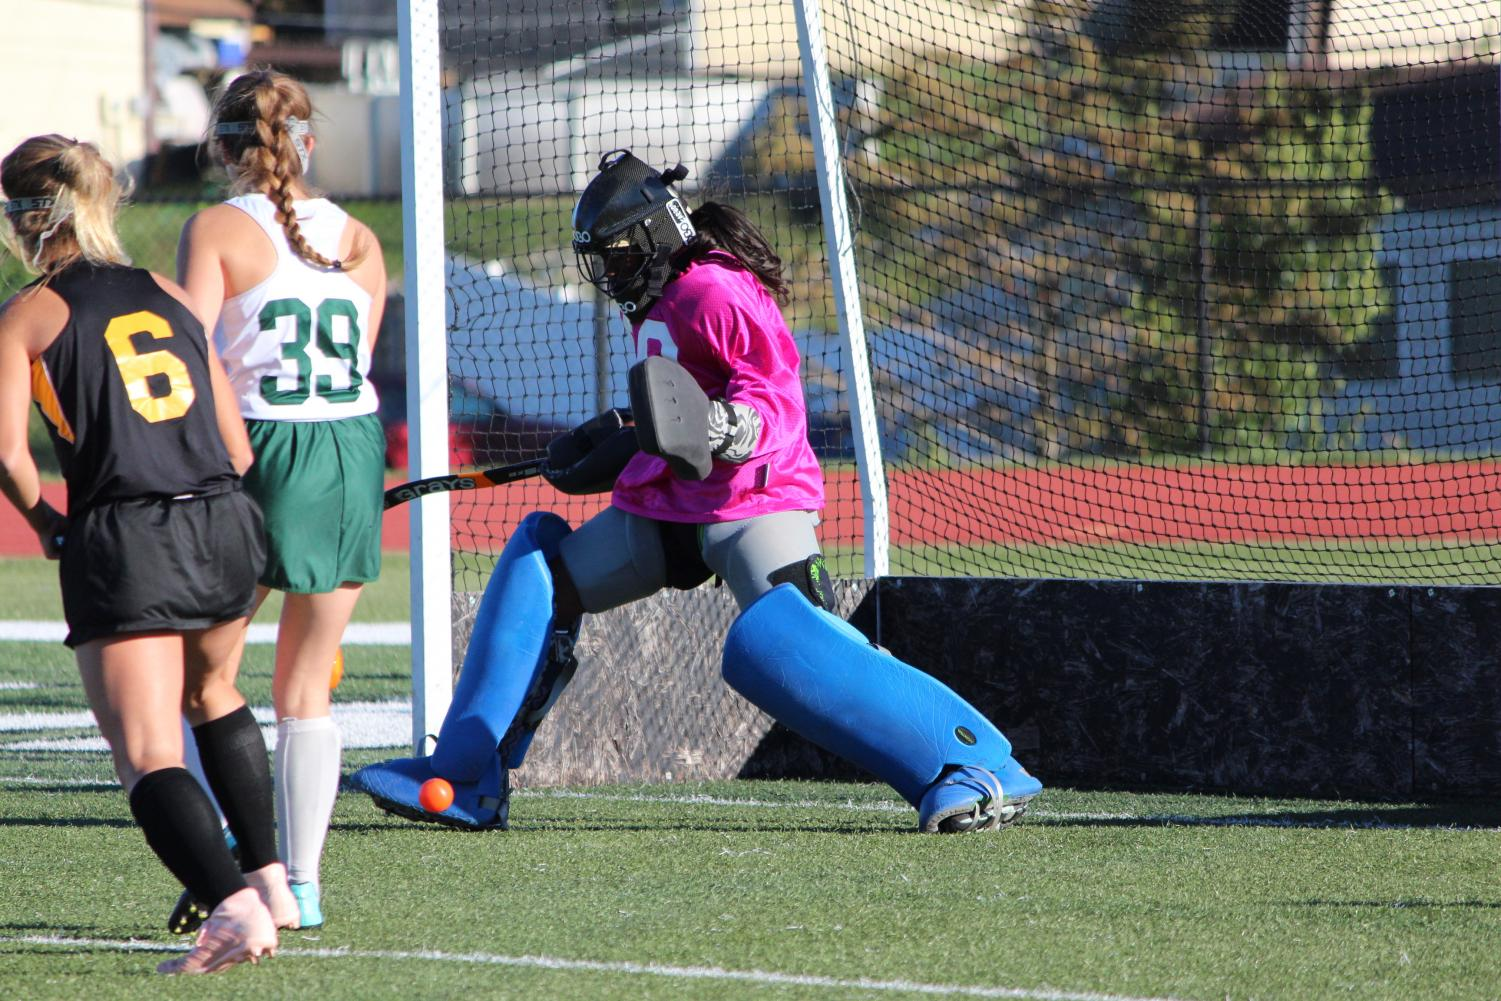 Mikayla Bridges makes a foot save in the girls' field hockey game on Senior Night against Oakville.